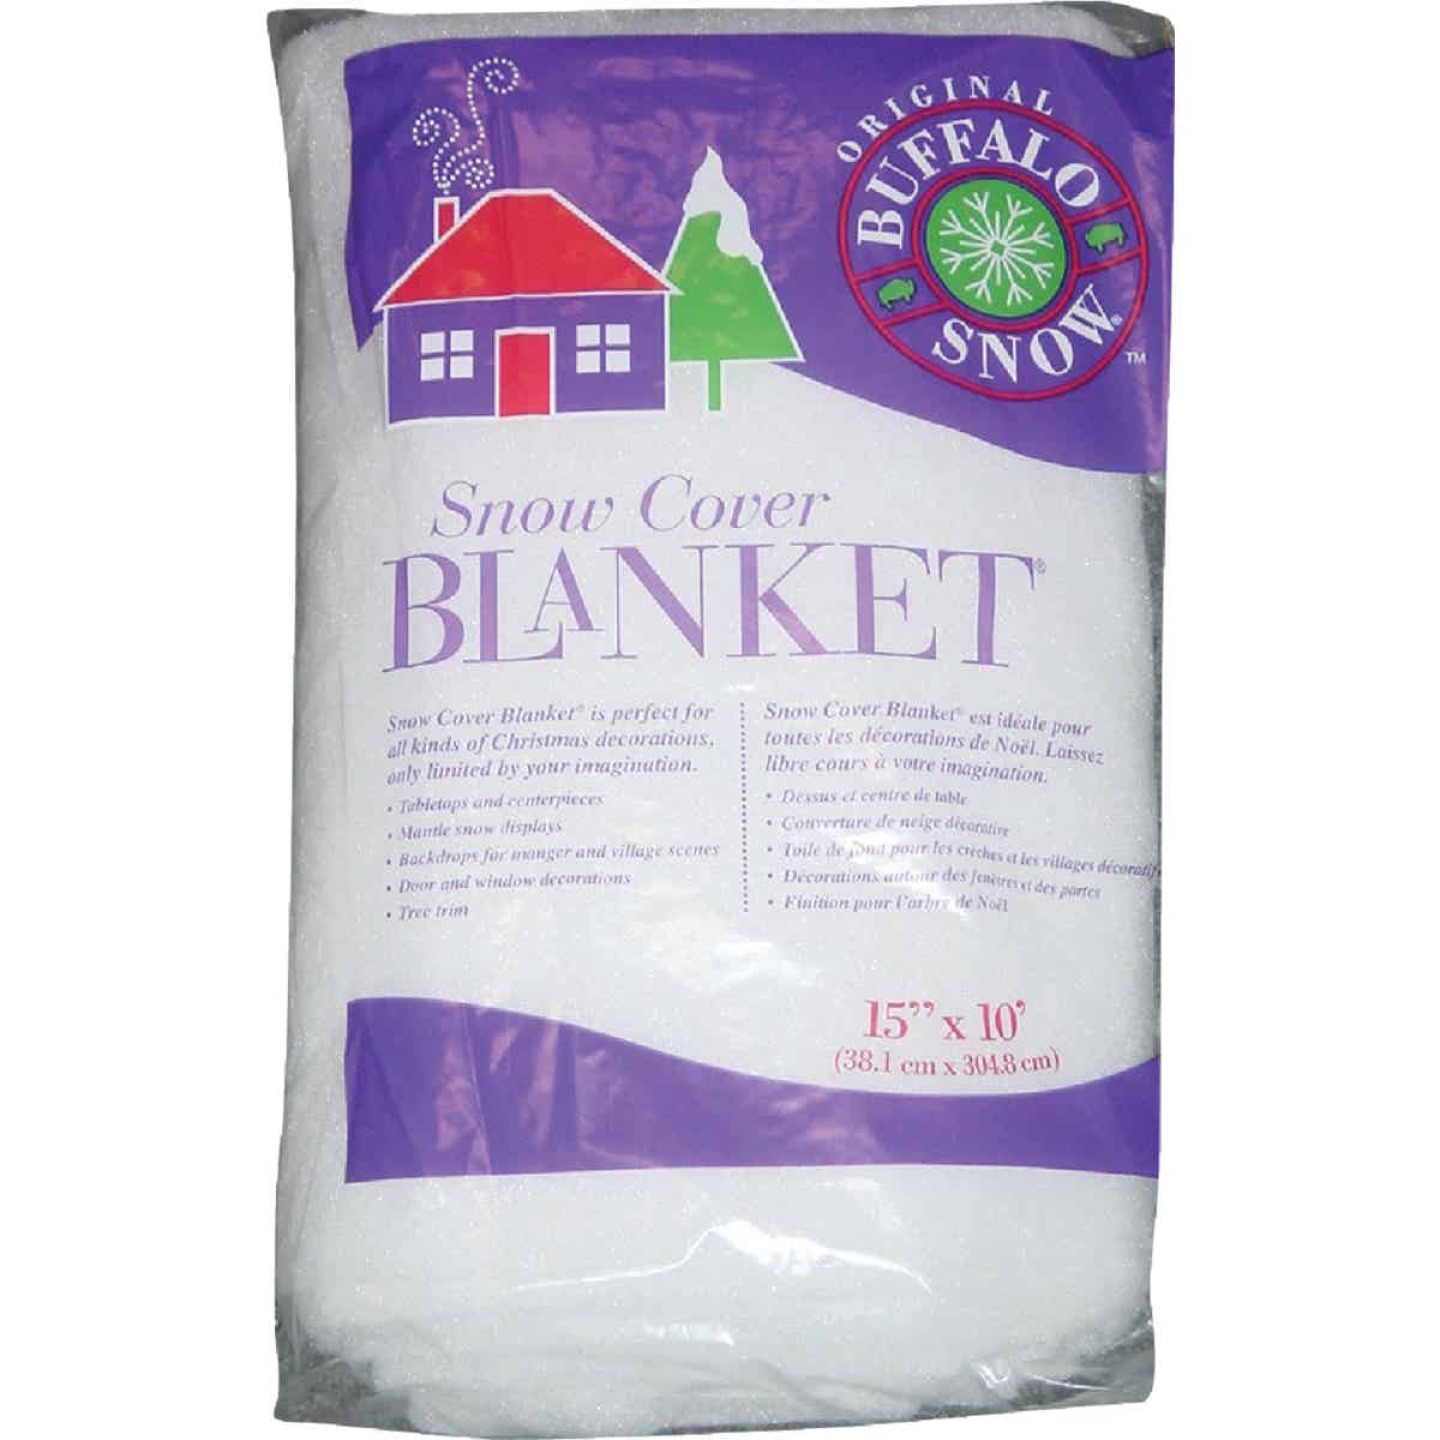 Buffalo Snow 15 In. W. x 10 Ft. L. x 1 In. Thick Snow Blanket Image 1